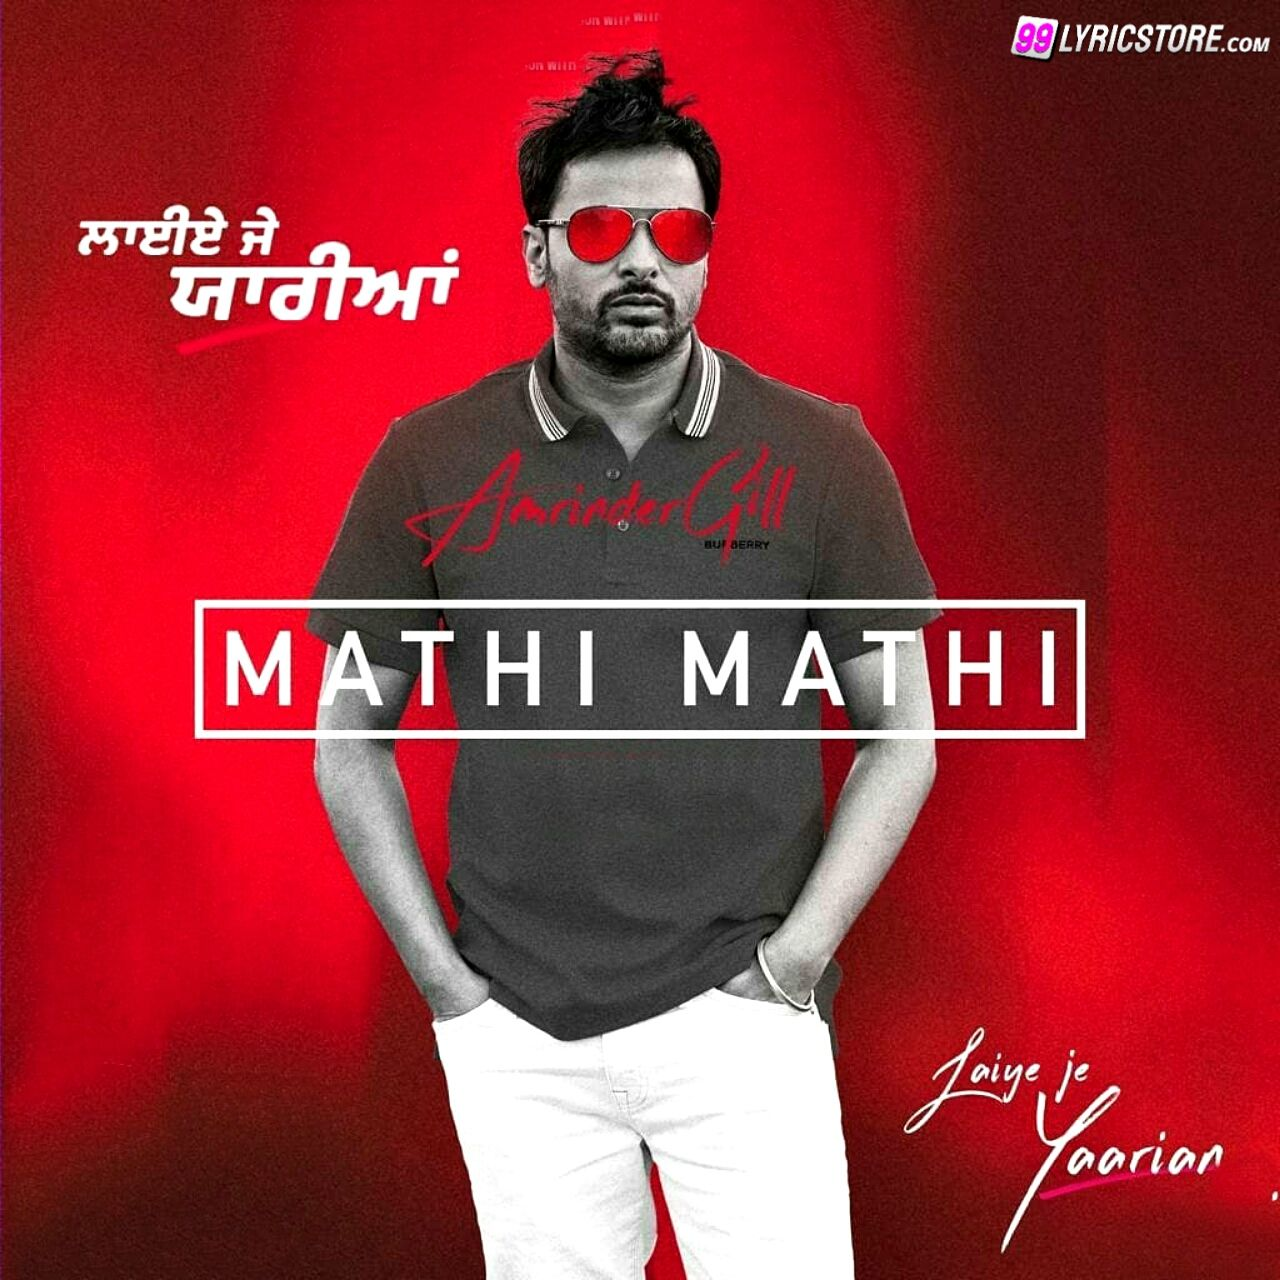 Mathi Mathi Punjabi Song Lyrics Sung by Amrinder Gill From movie Laiye Je Yaarian